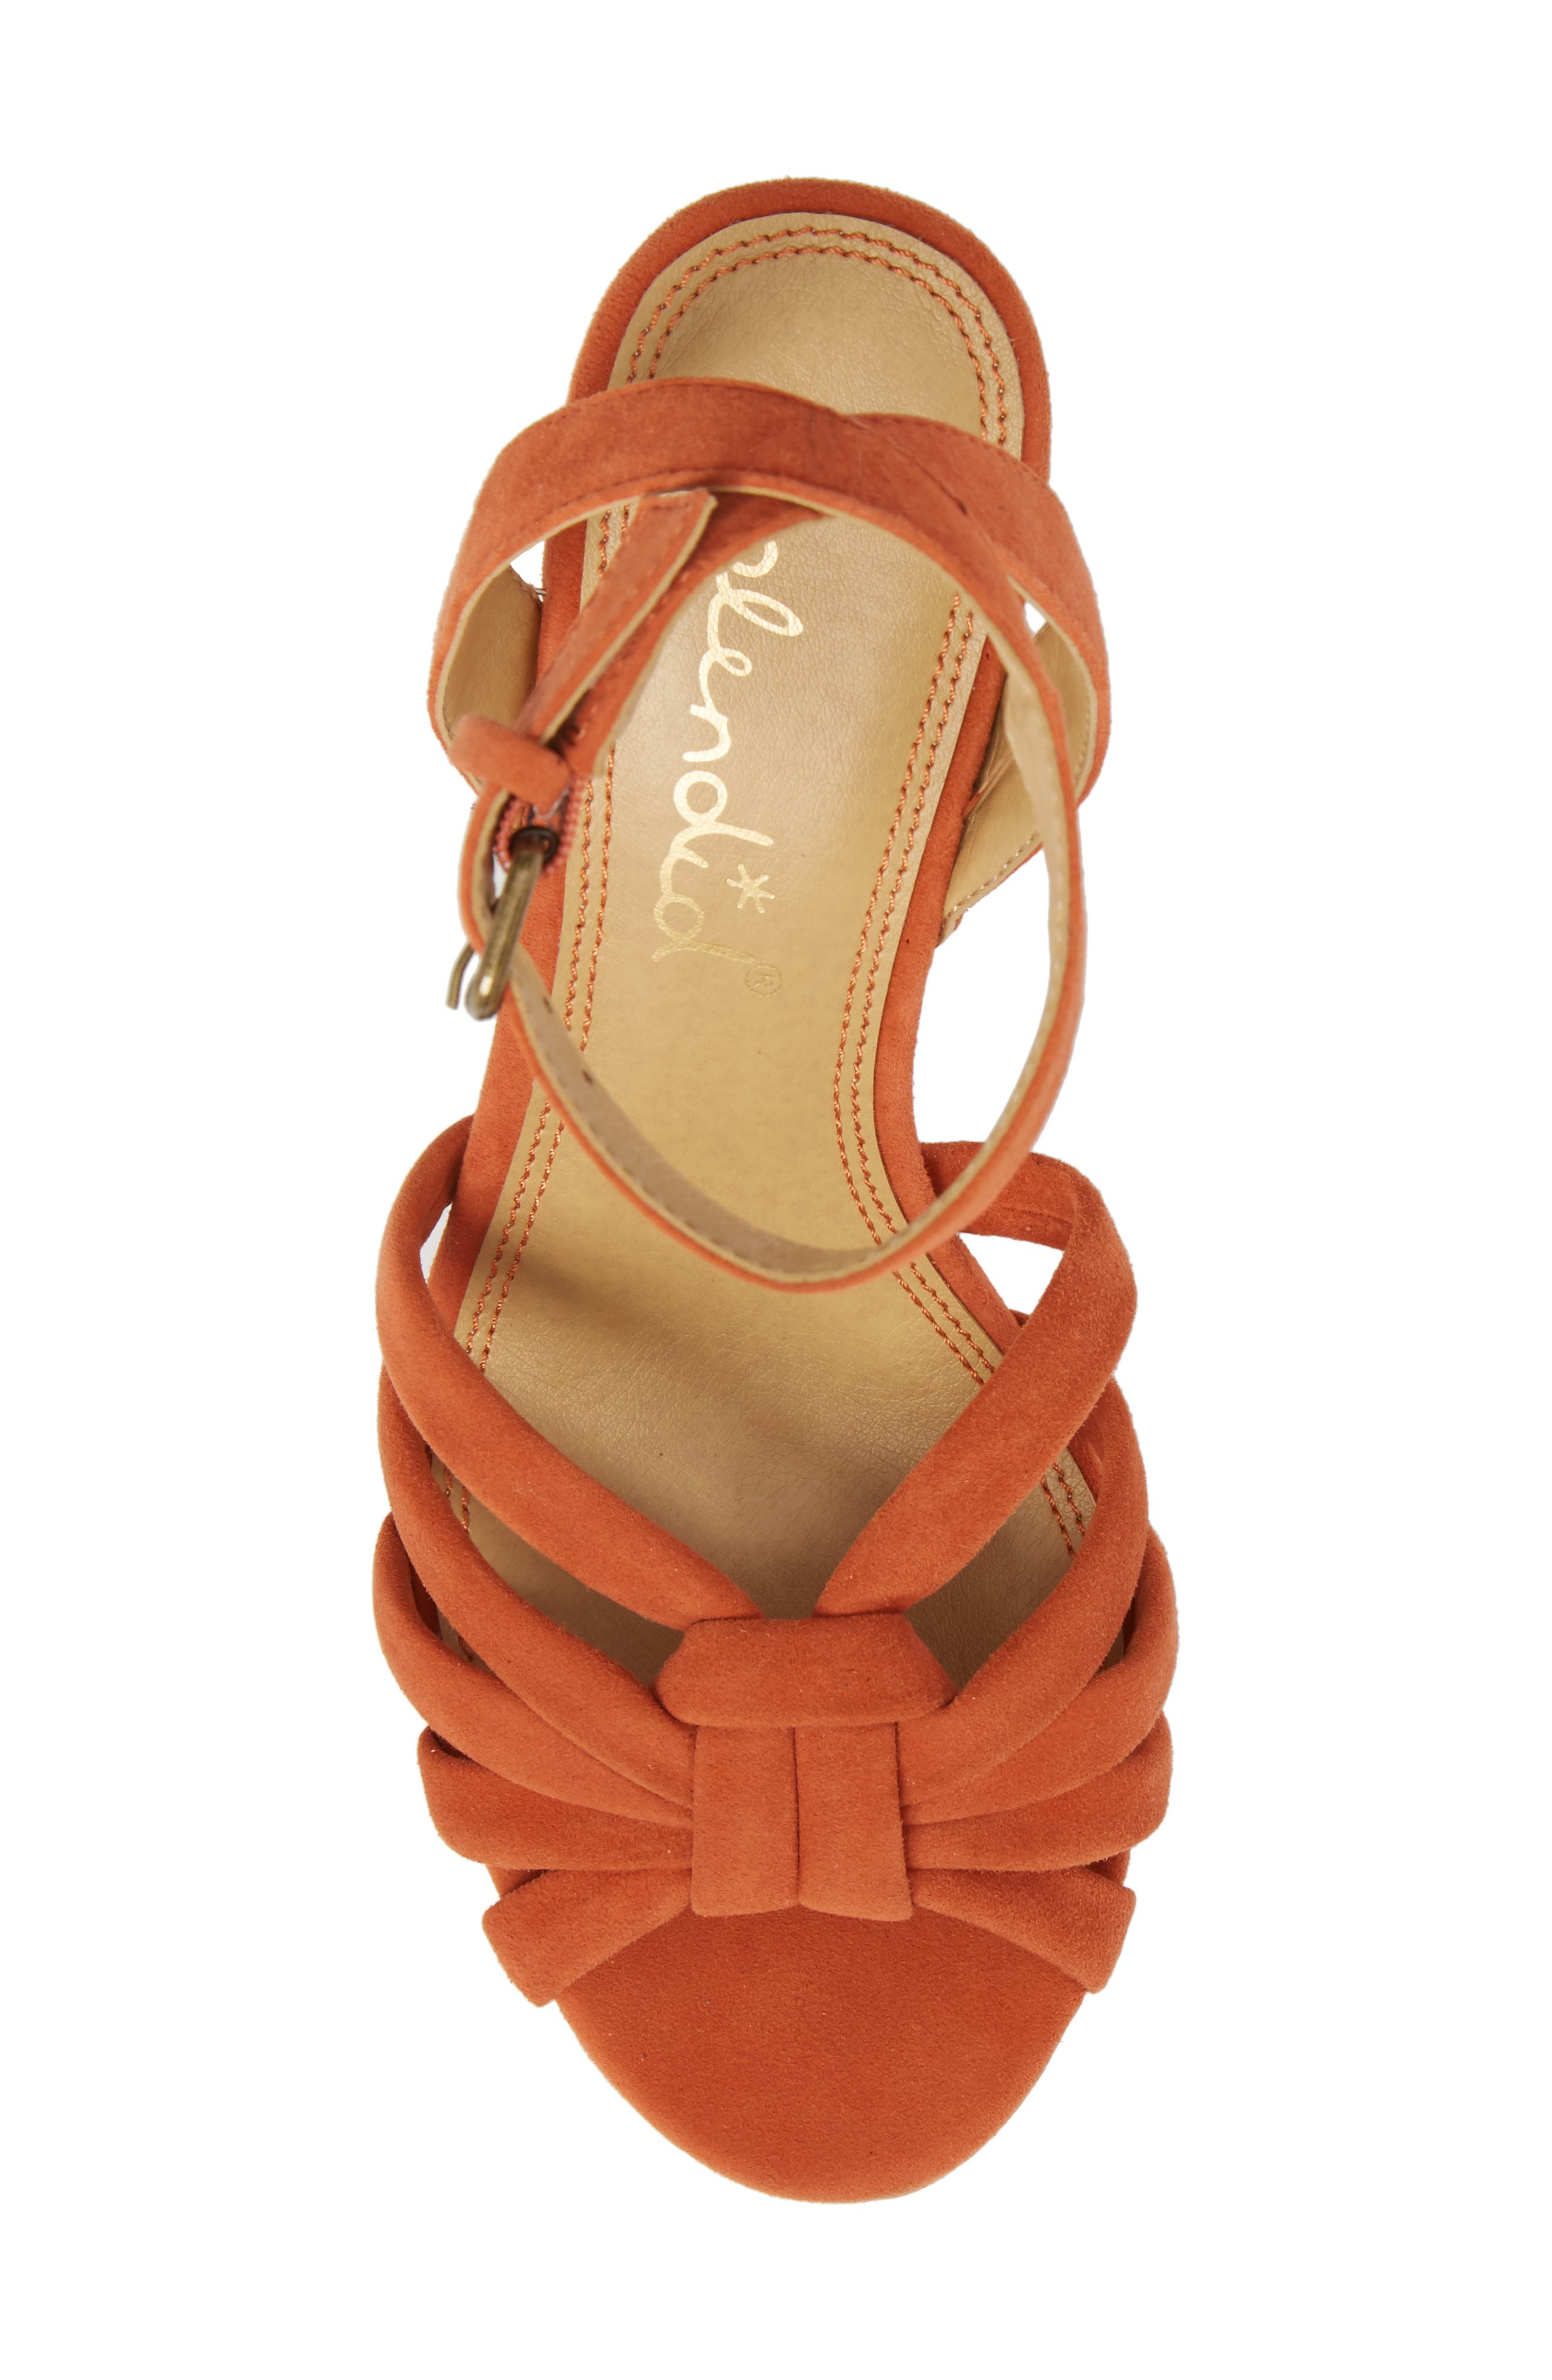 Fallon Wedge Sandal,                             Alternate thumbnail 4, color,                             Coral Suede